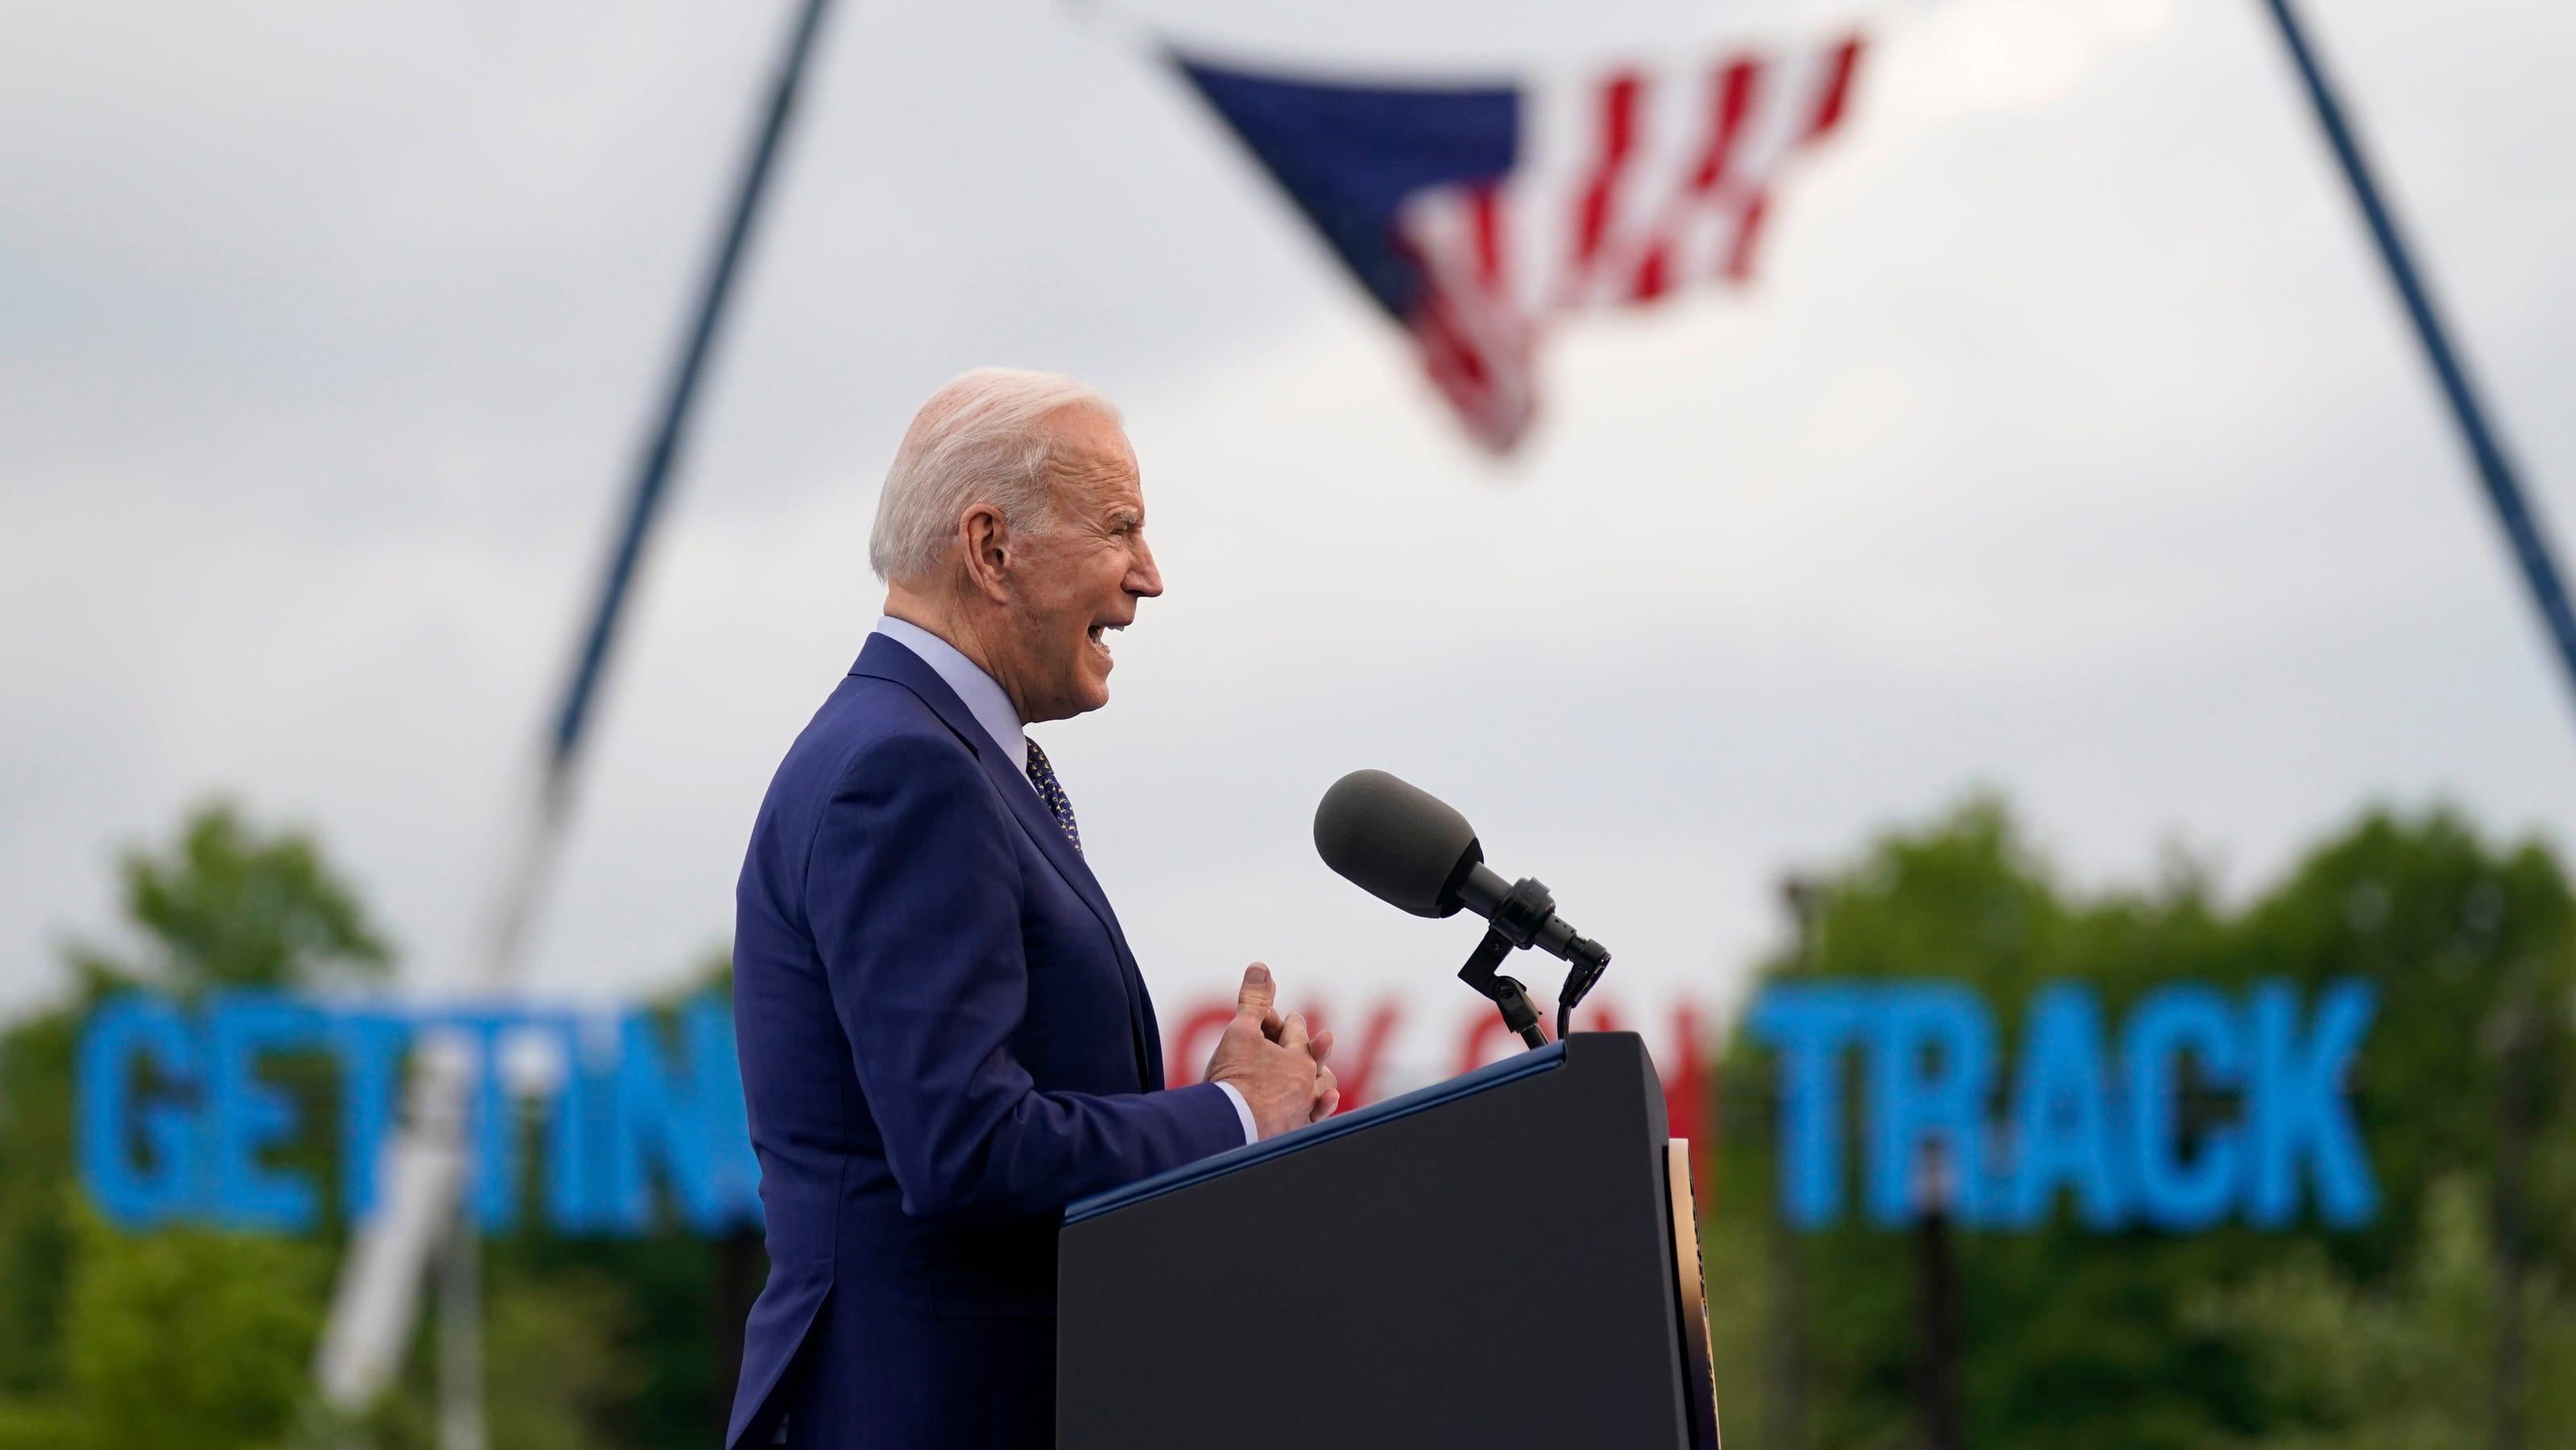 Reality bites: From Mideast to Congress, Biden's next hundred days are harder. Now what? - USA TODAY